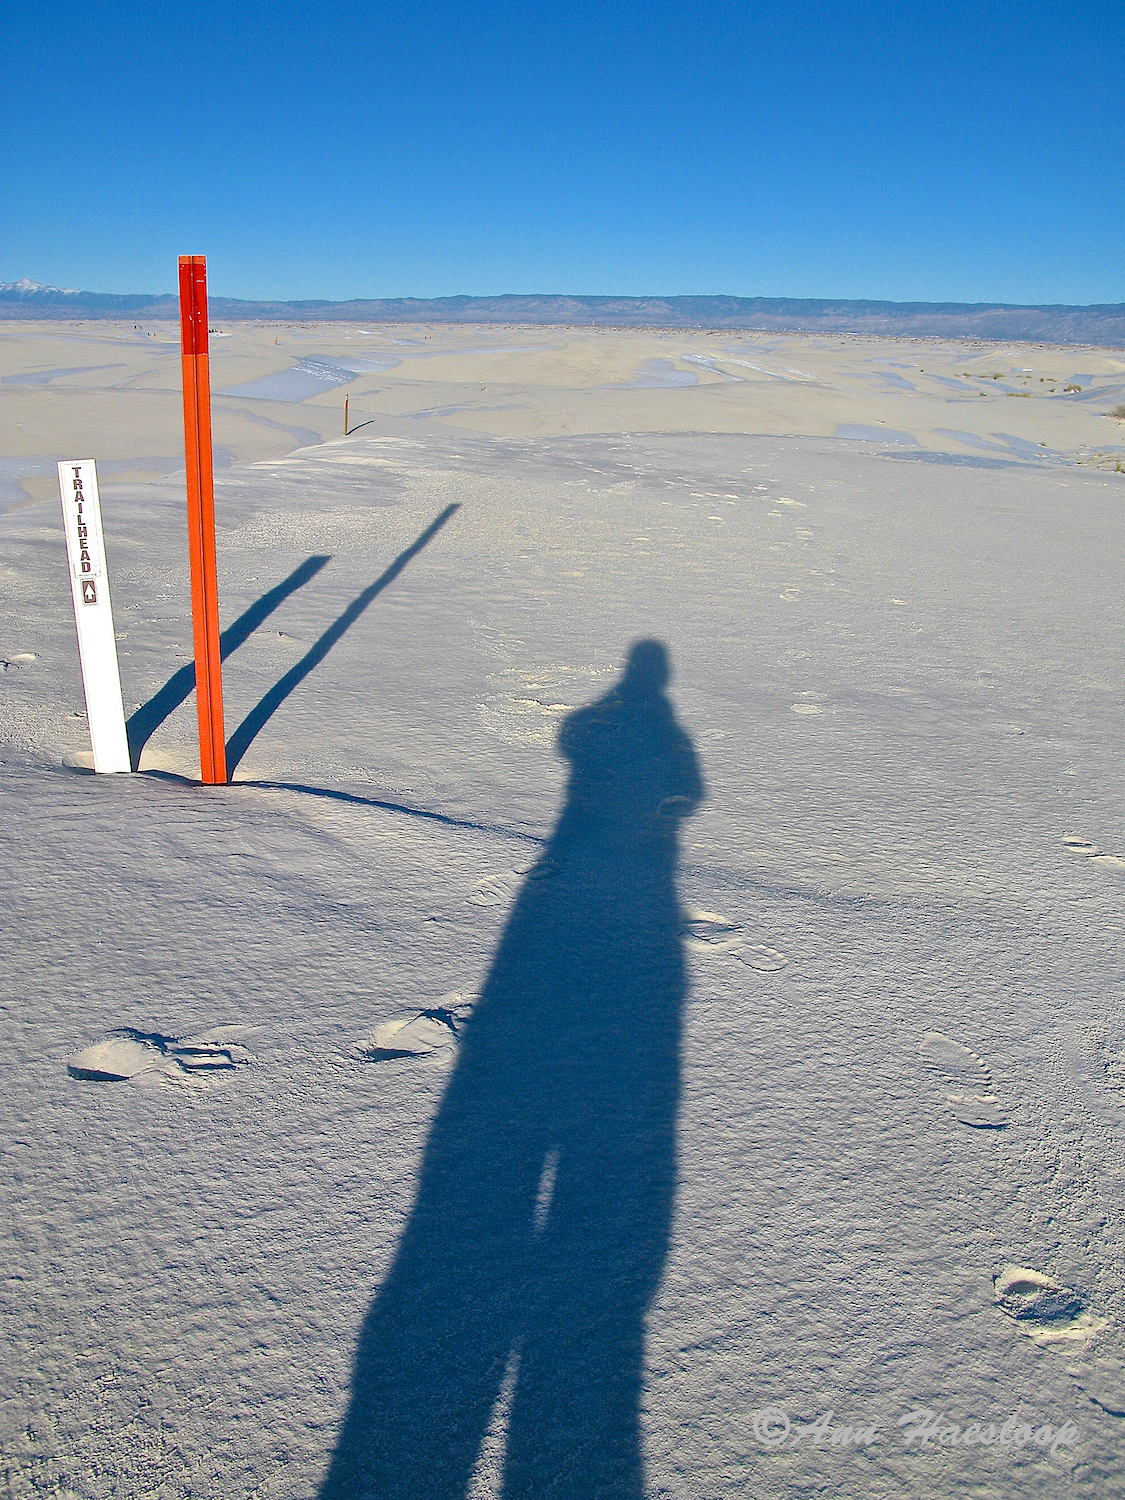 """This image has a story. I smile as I write it up. I was showing Ann how her photos of the path that she is hiking serves as a 'leading line'. She got the point! Then she got a bit artsy in her interpretation! The red poles are markers placed every quarter mile to guide hikers around a loop. There are actually three in this photo. But, for me, the REAL leading line is the shadow of Ann, super hiker, that indicates """"I am going there."""" And she did."""